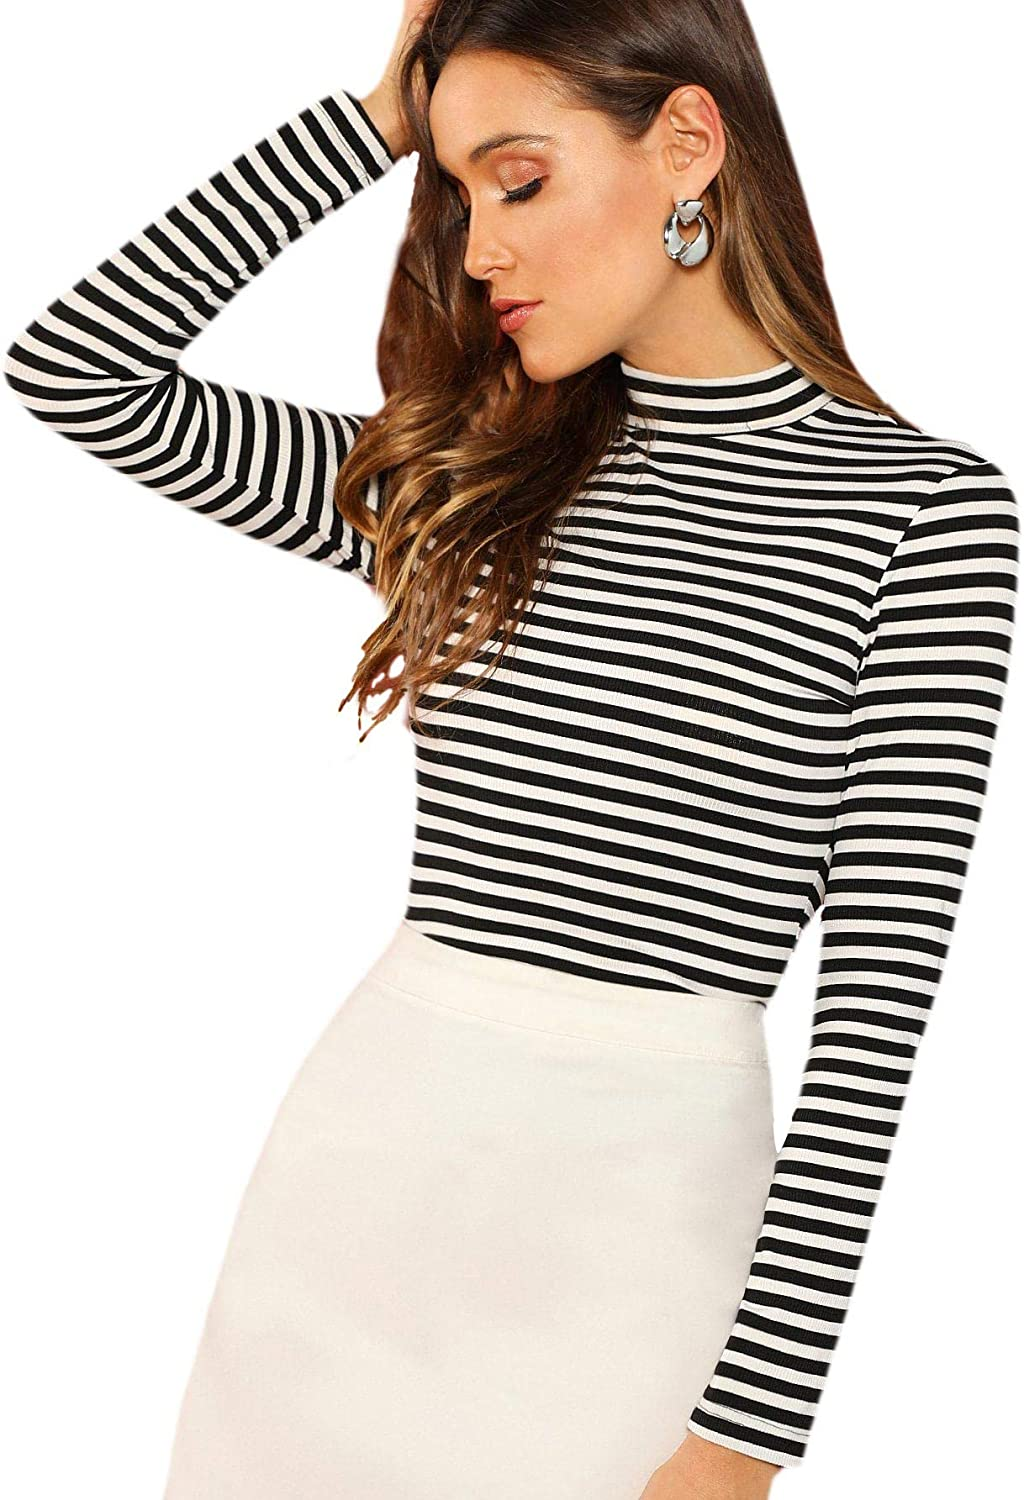 Floerns Women S High Neck Long Sleeve Slim Fit Stretch Striped T Shirts At Amazon Women S Clothing Store